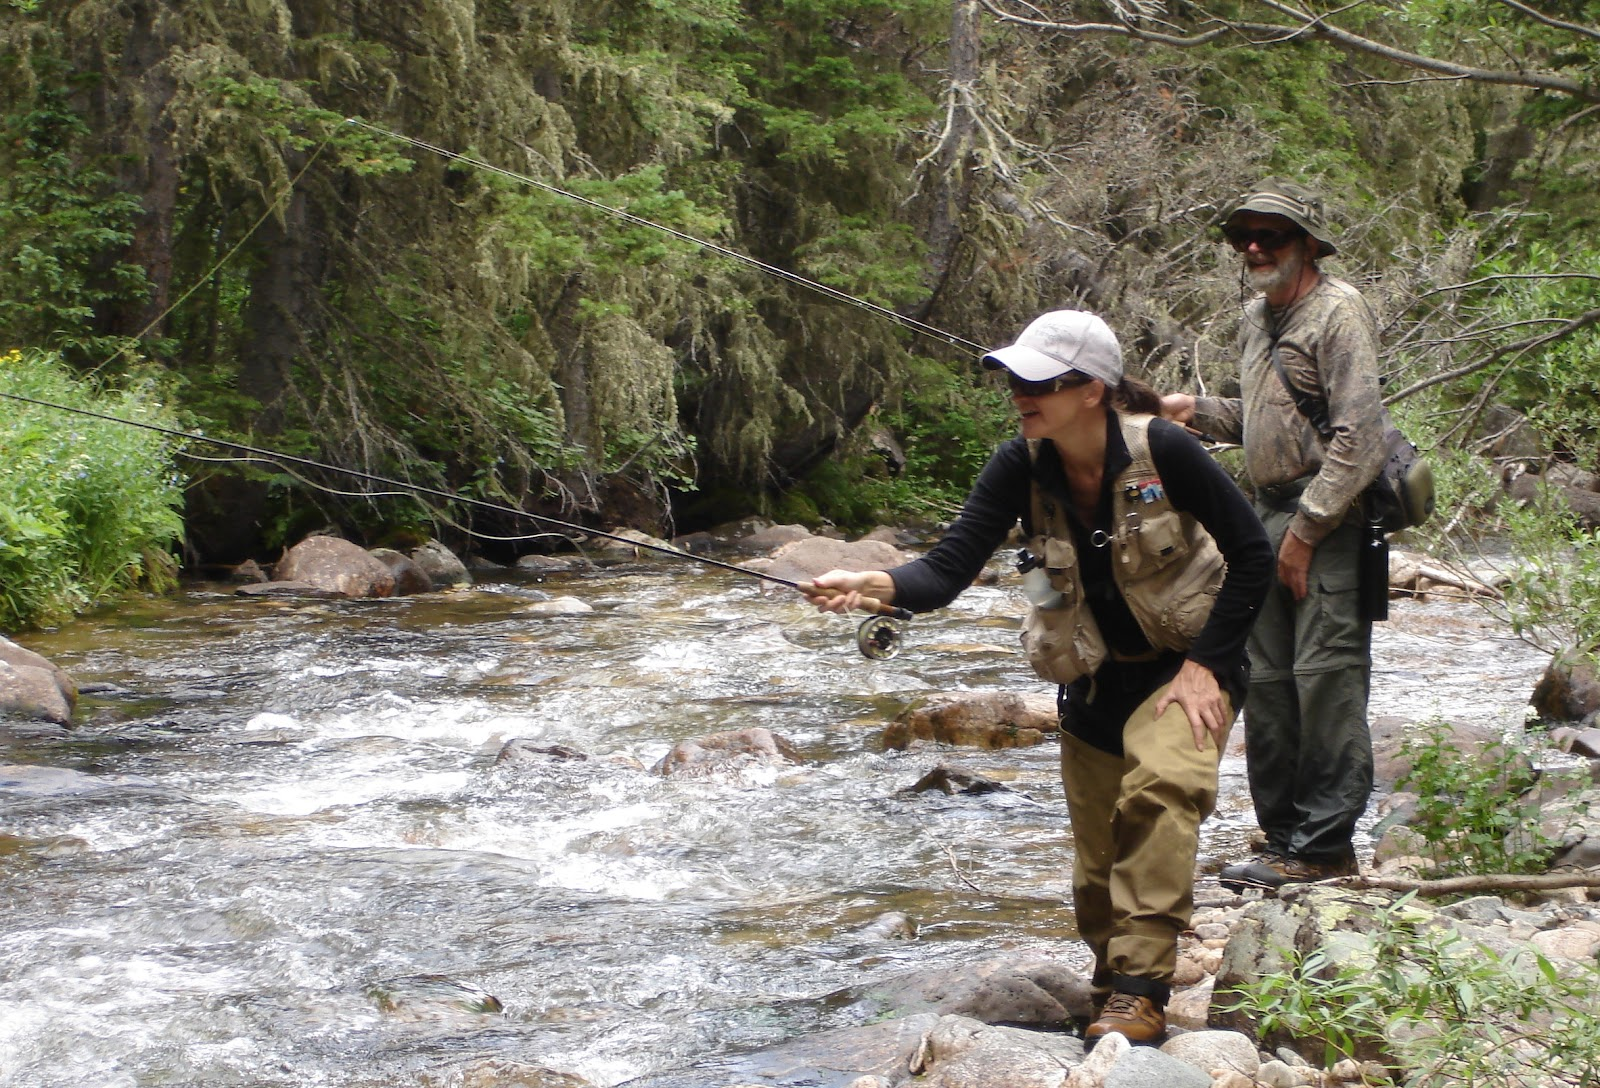 Colorado fly fishing reports small stream assault family for Colorado fly fishing report